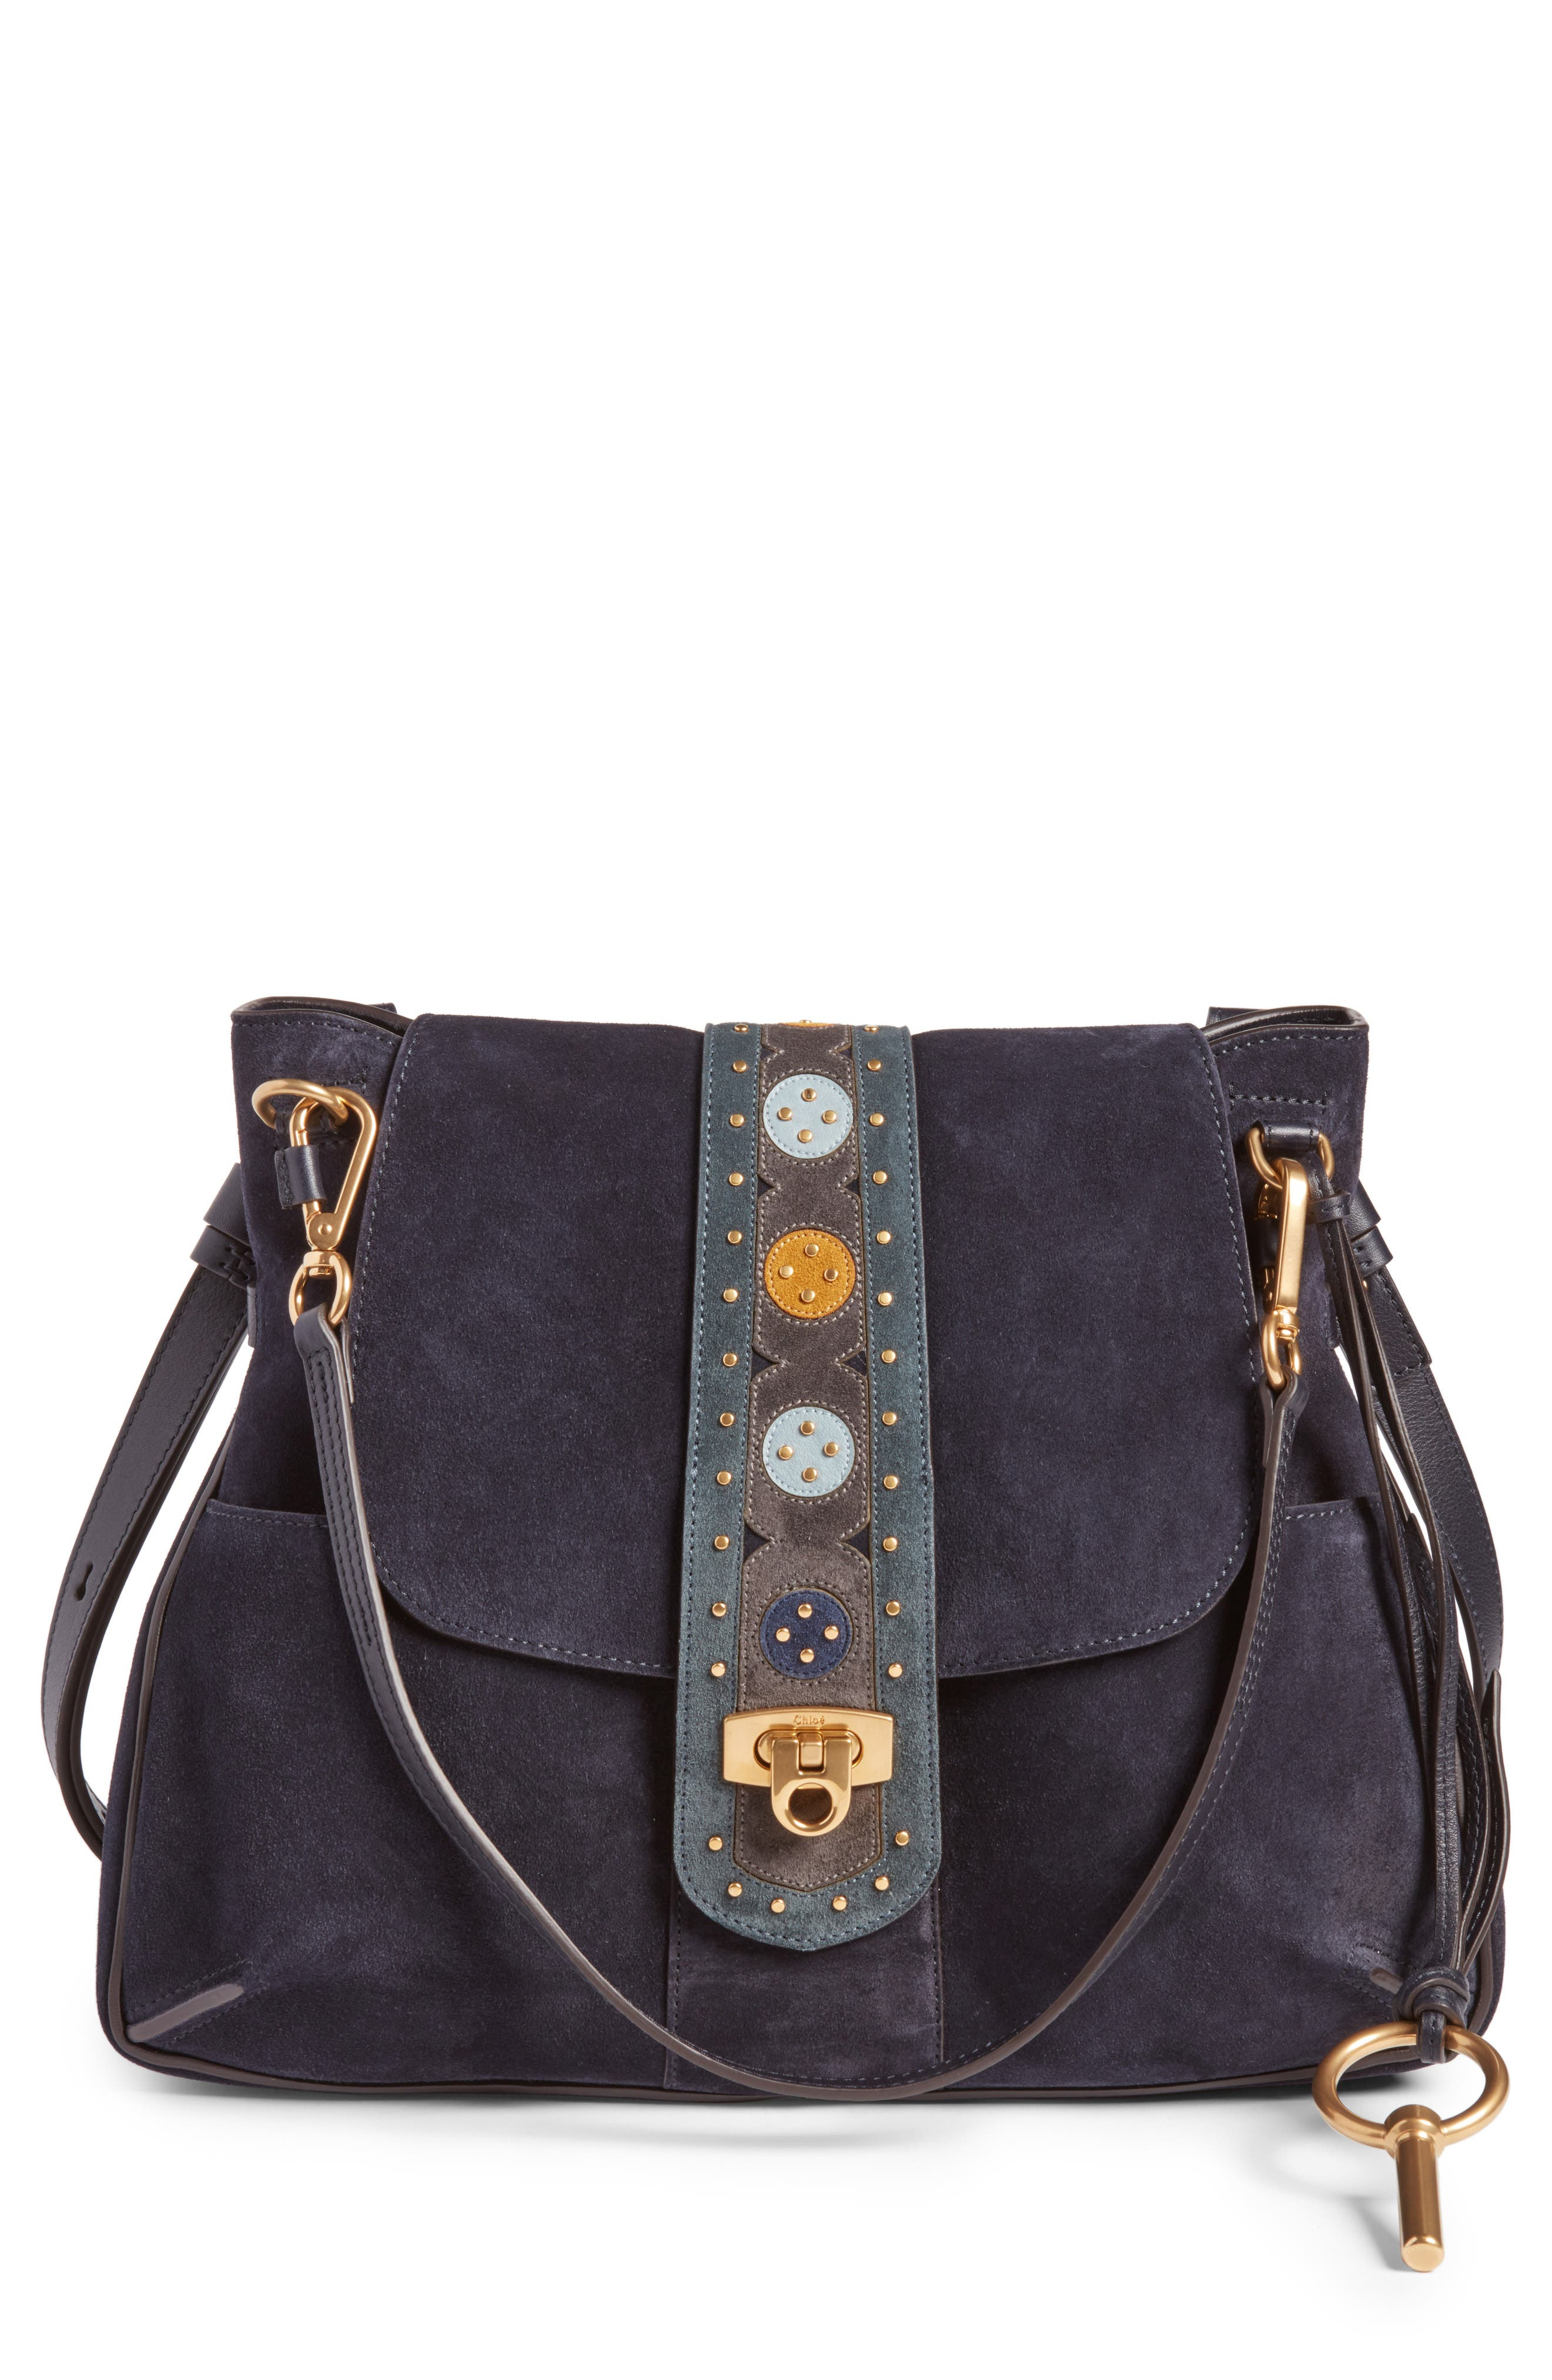 Main Image - Chloé Medium Lexa Suede Shoulder Bag